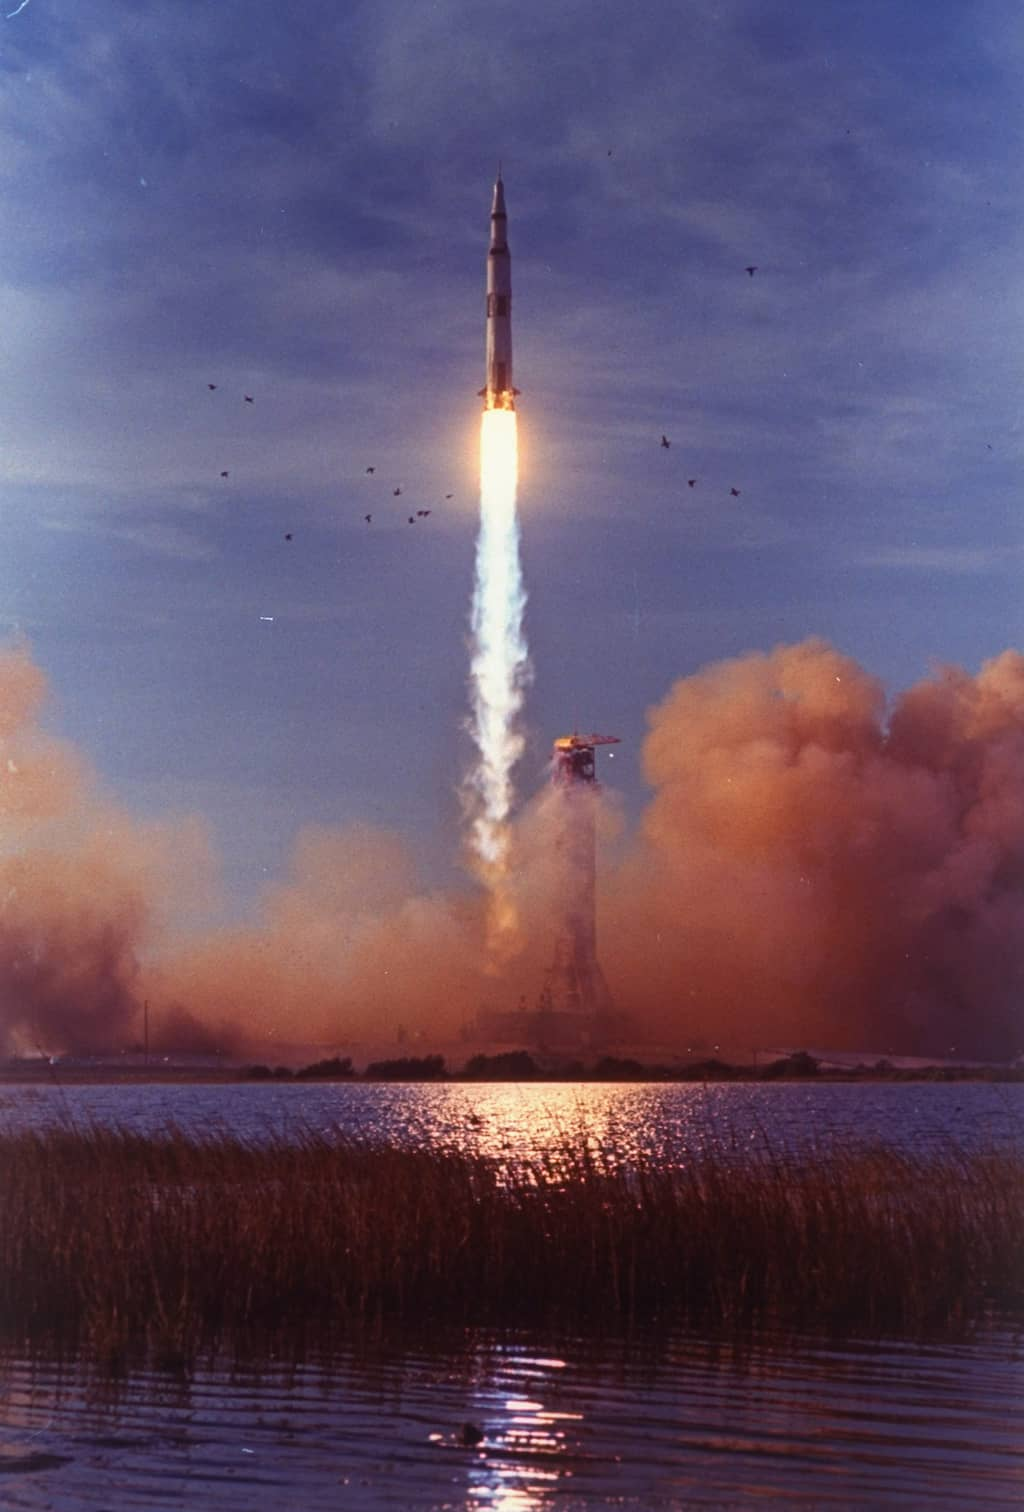 Liftoff of Apollo 8. (Photo by Ralph Morse/The LIFE Picture Collection/Getty Images)